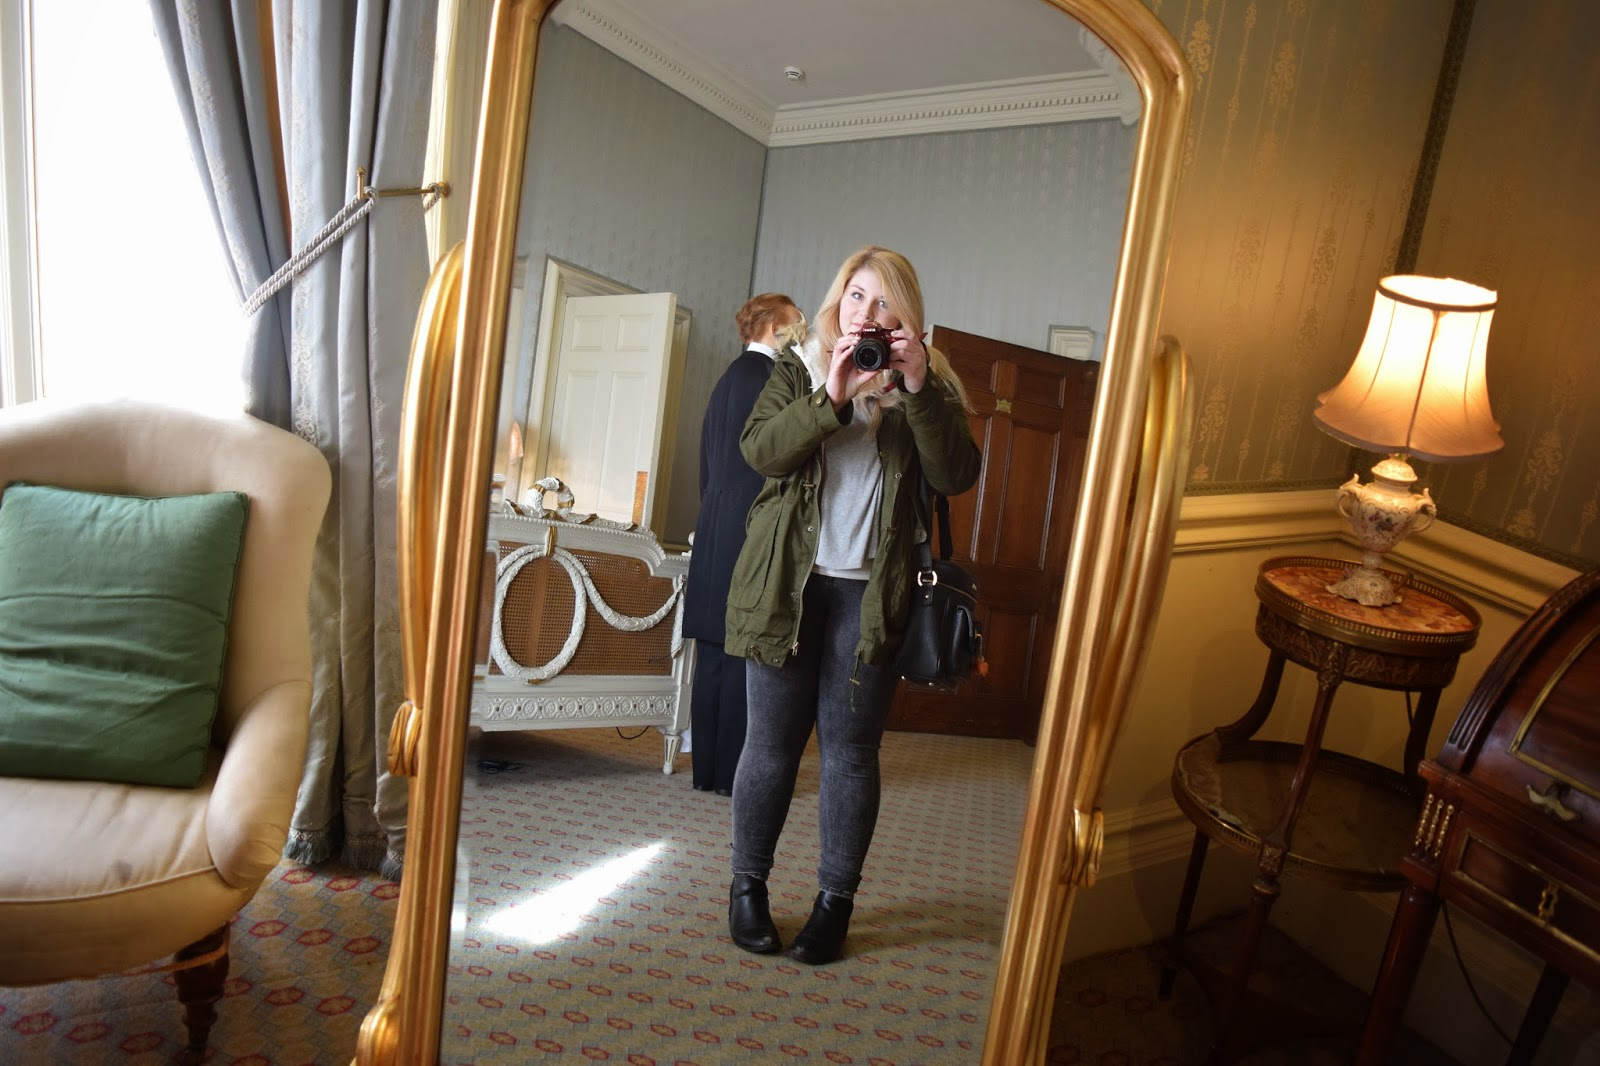 a mirror selfie of just myself inside one of the state rooms at warwick castle